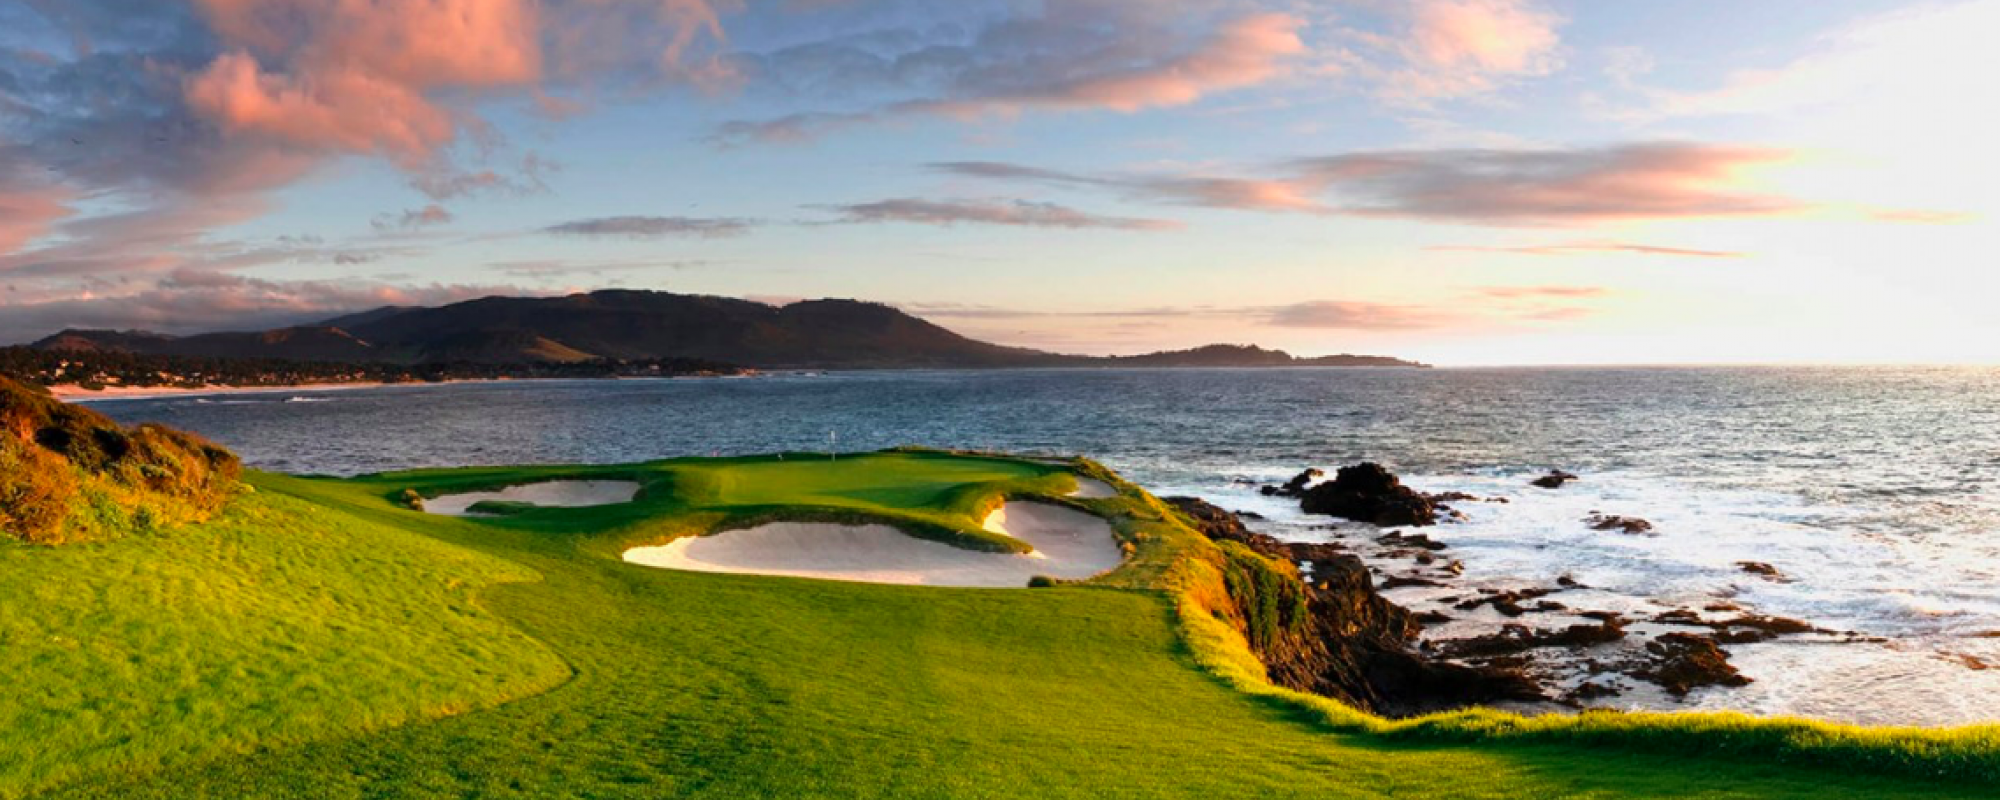 Pebble Beach, USA